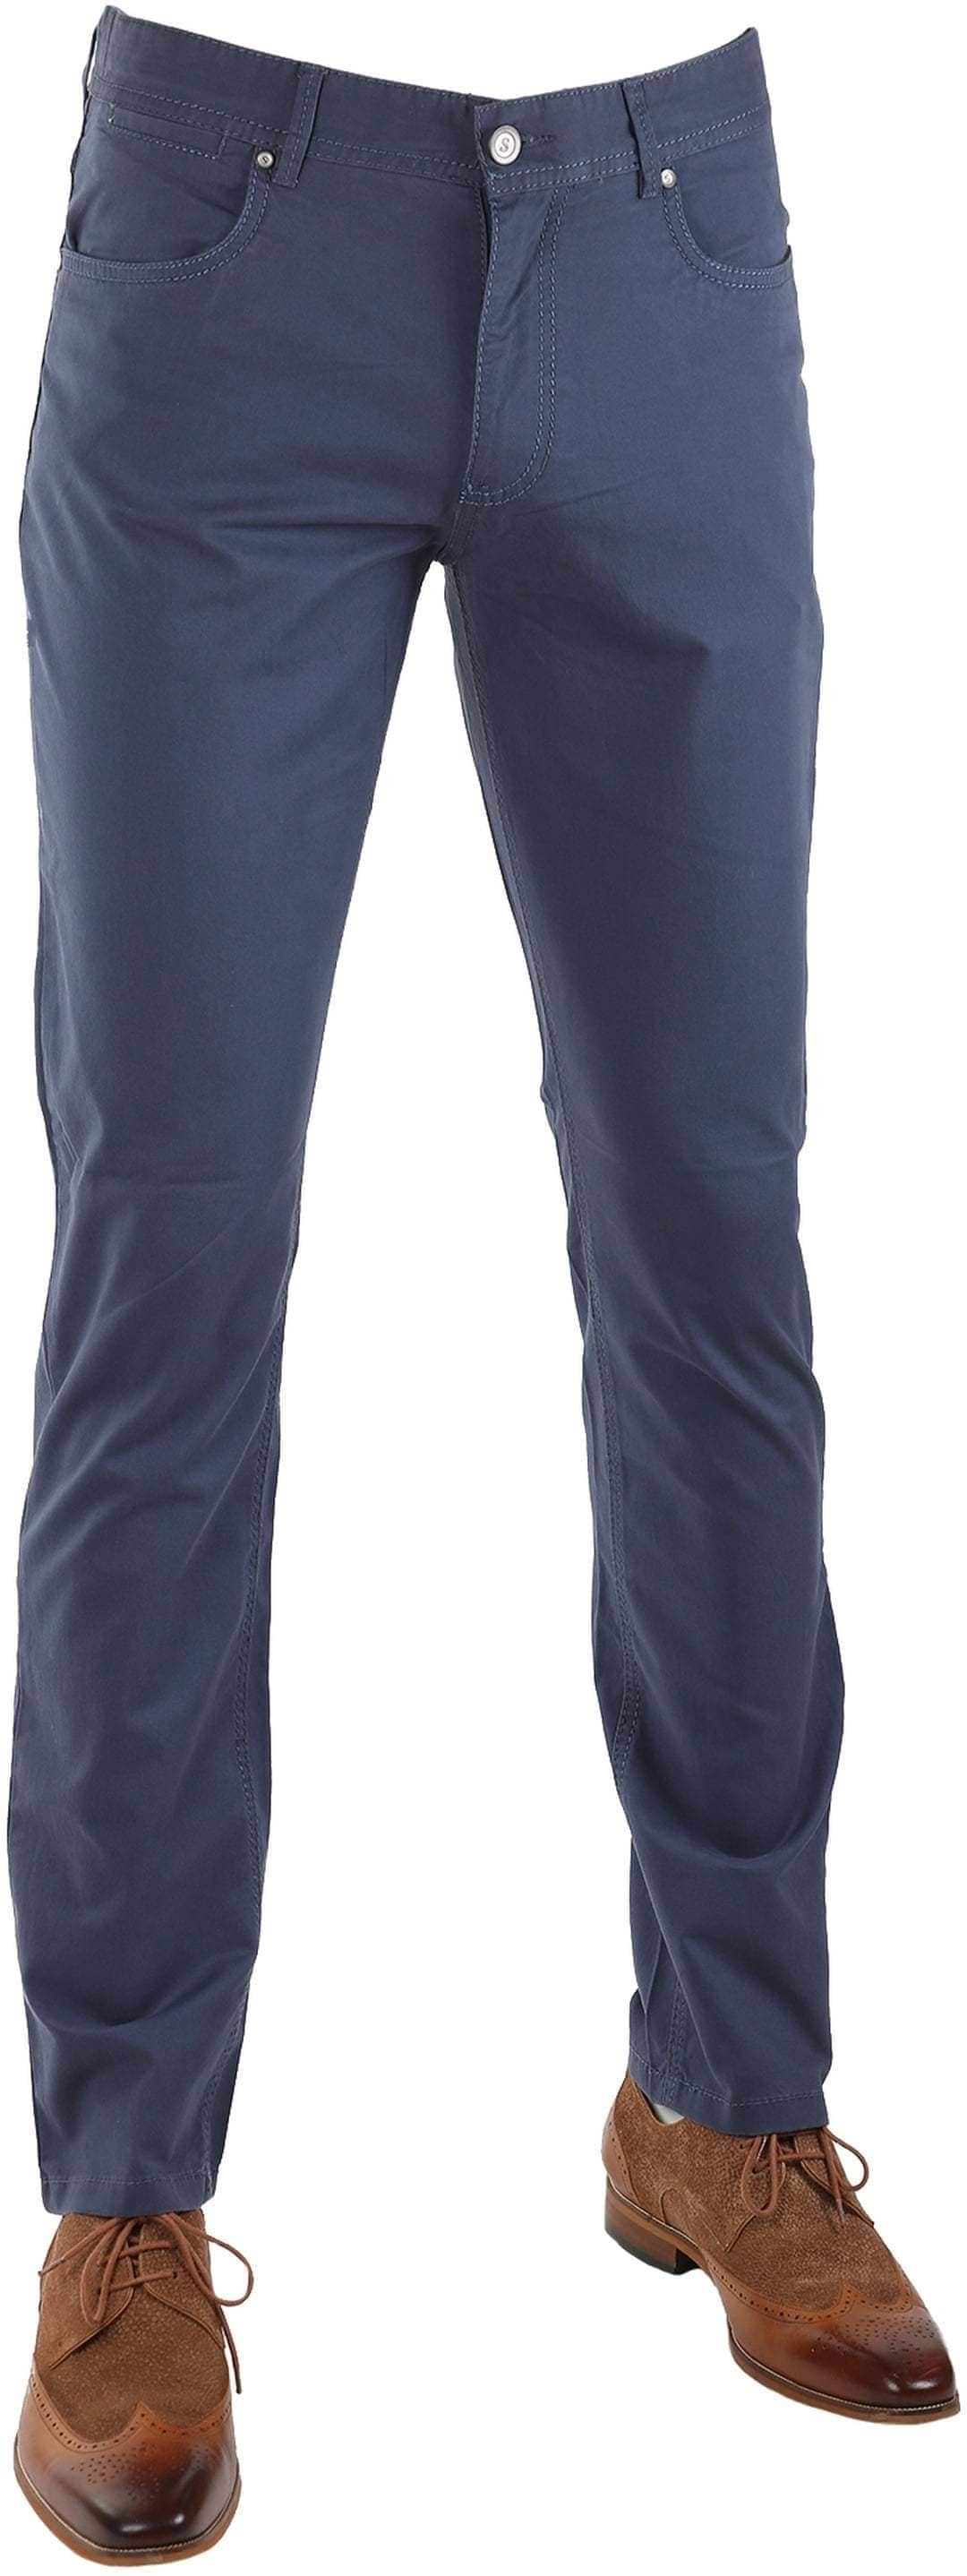 Suitable Barrie Broek Donkerblauw foto 0